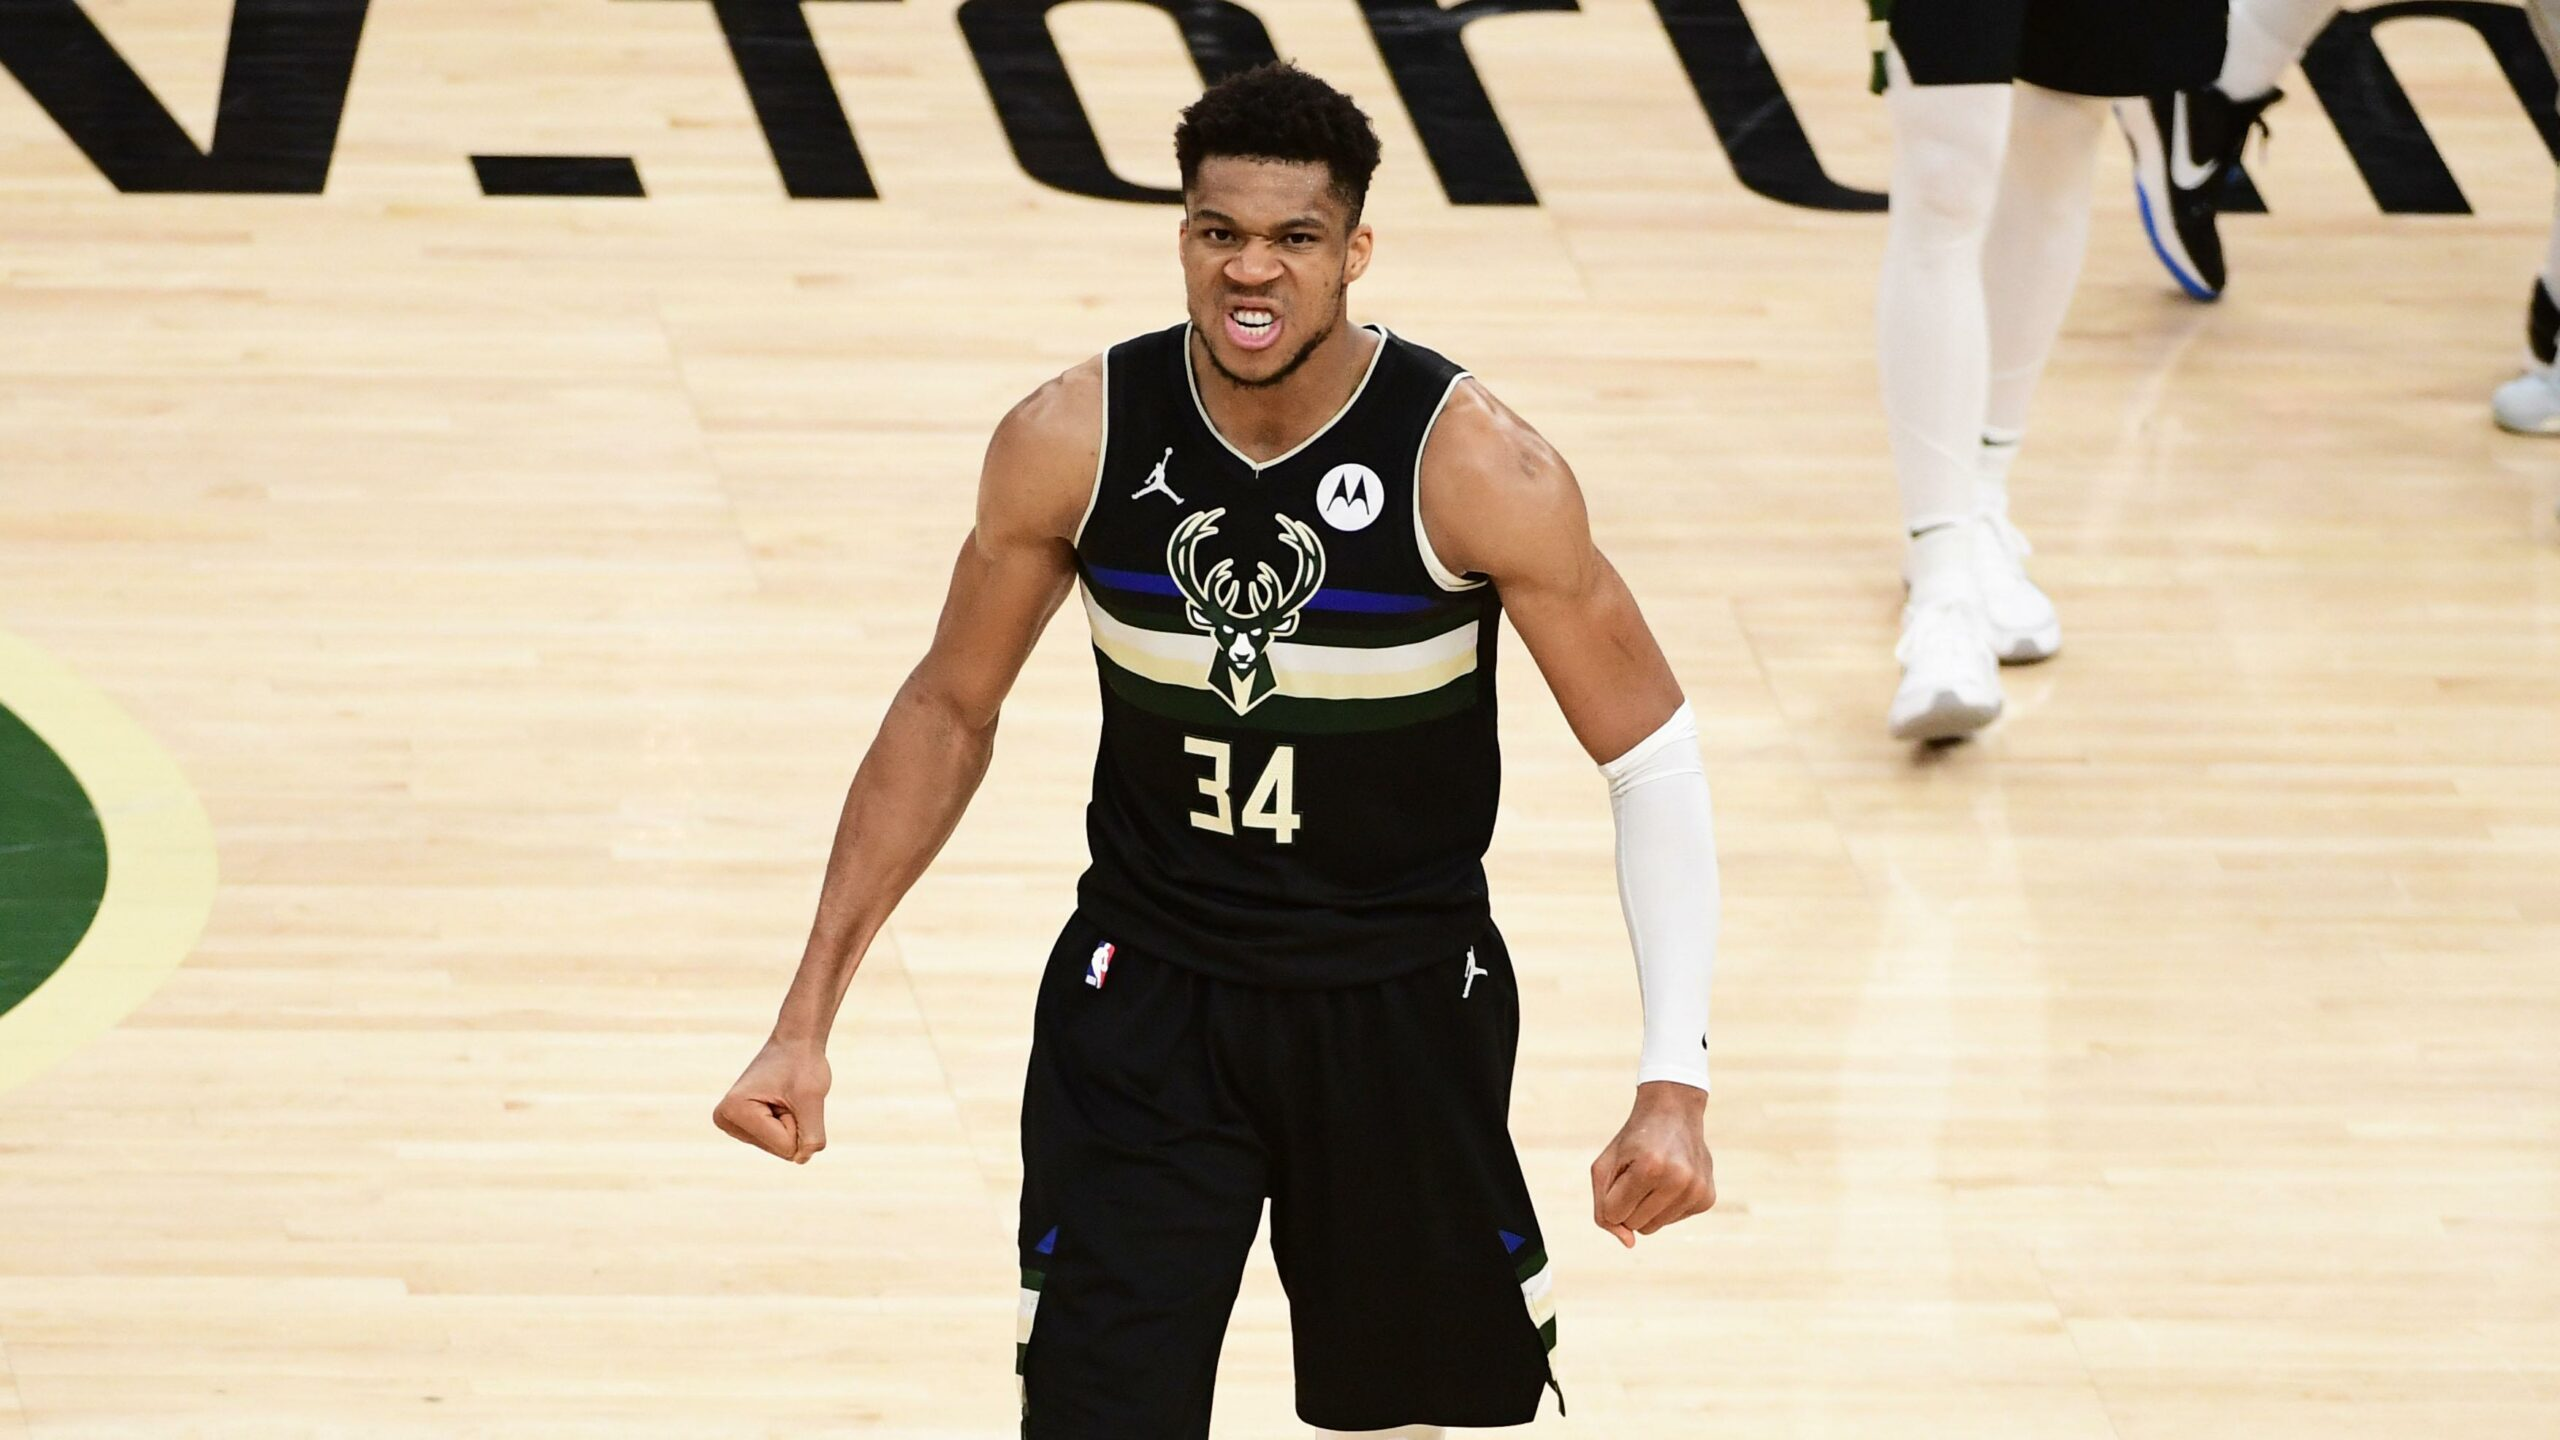 Giannis' Outstanding Performance Leads to Bucks Win